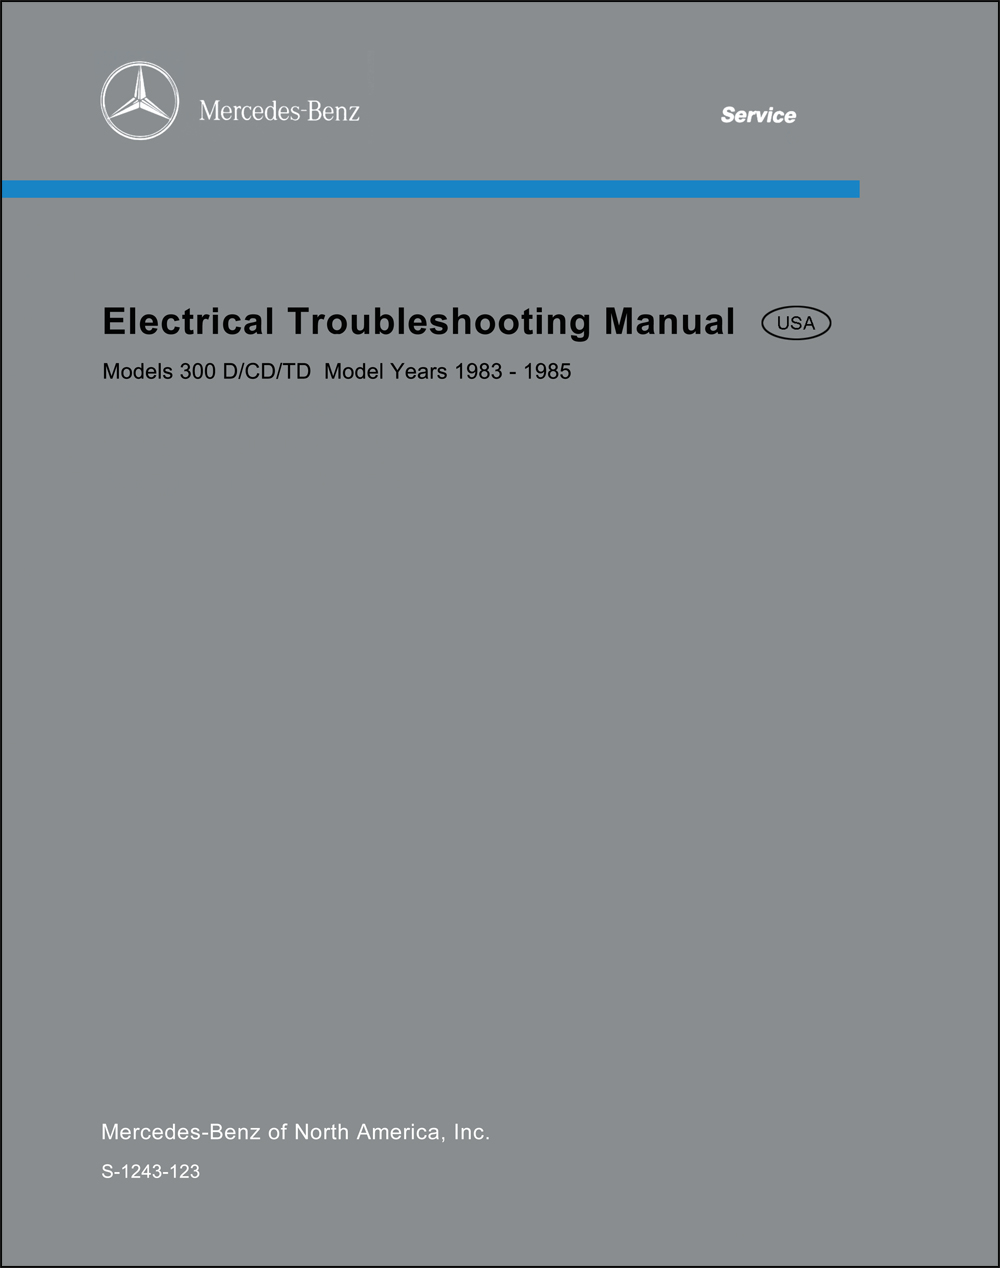 1983-1985 Mercedes 300 D/CD/TD (123) Electrical Troubleshooting Manual